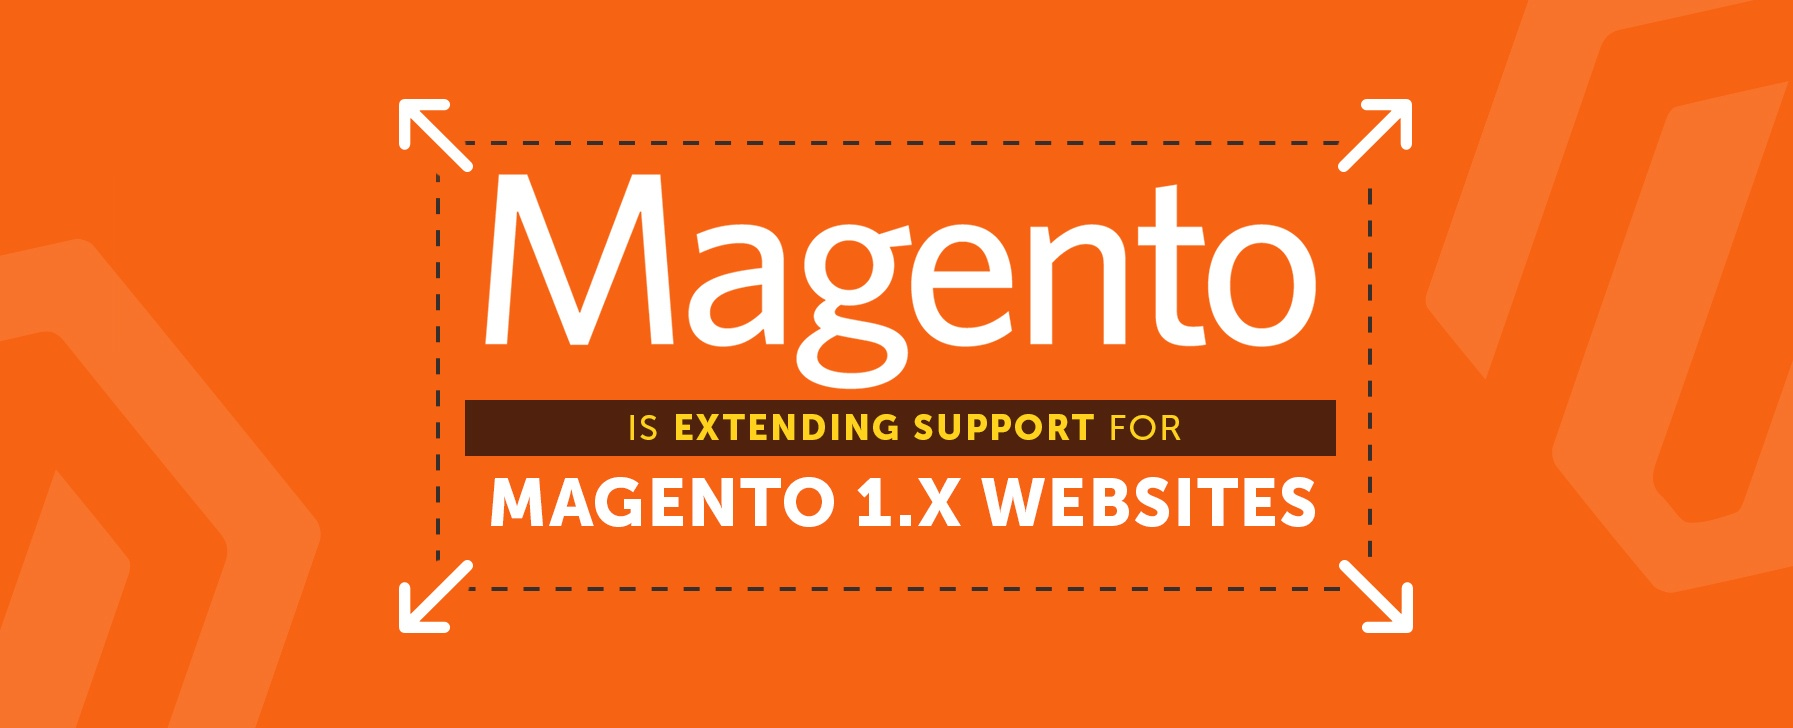 Magento-is-Extending-Support-for-Magento-1.x-Websites-